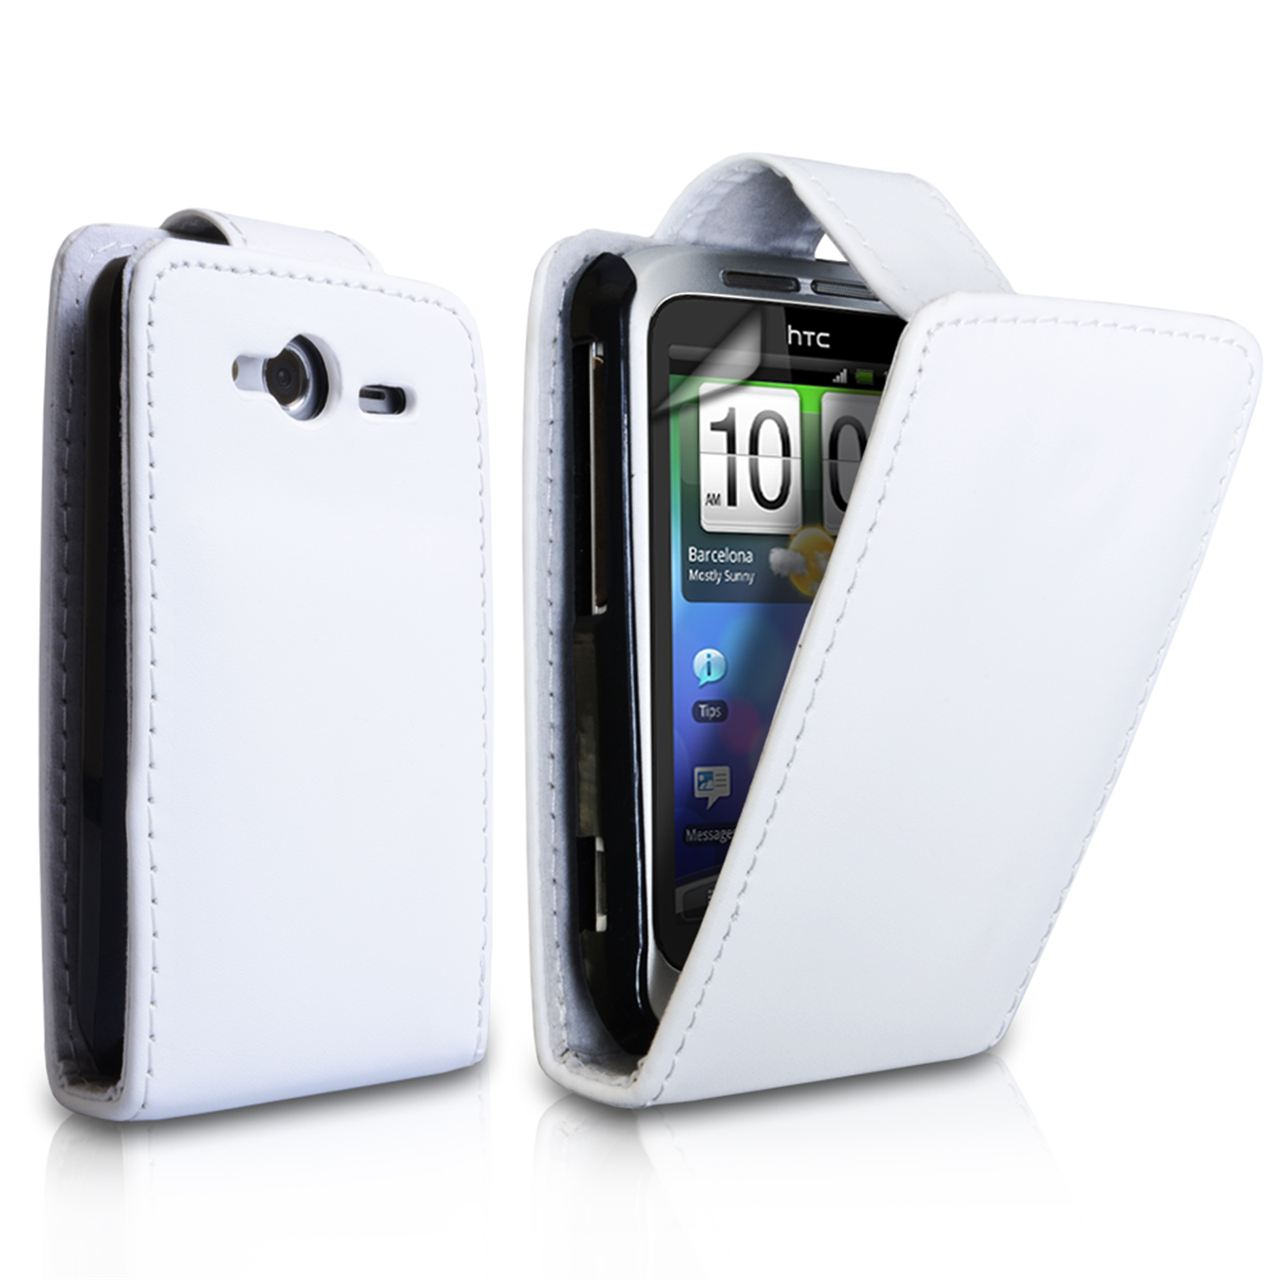 YouSave Accessories HTC Wildfire S Leather-Effect Flip Case - White